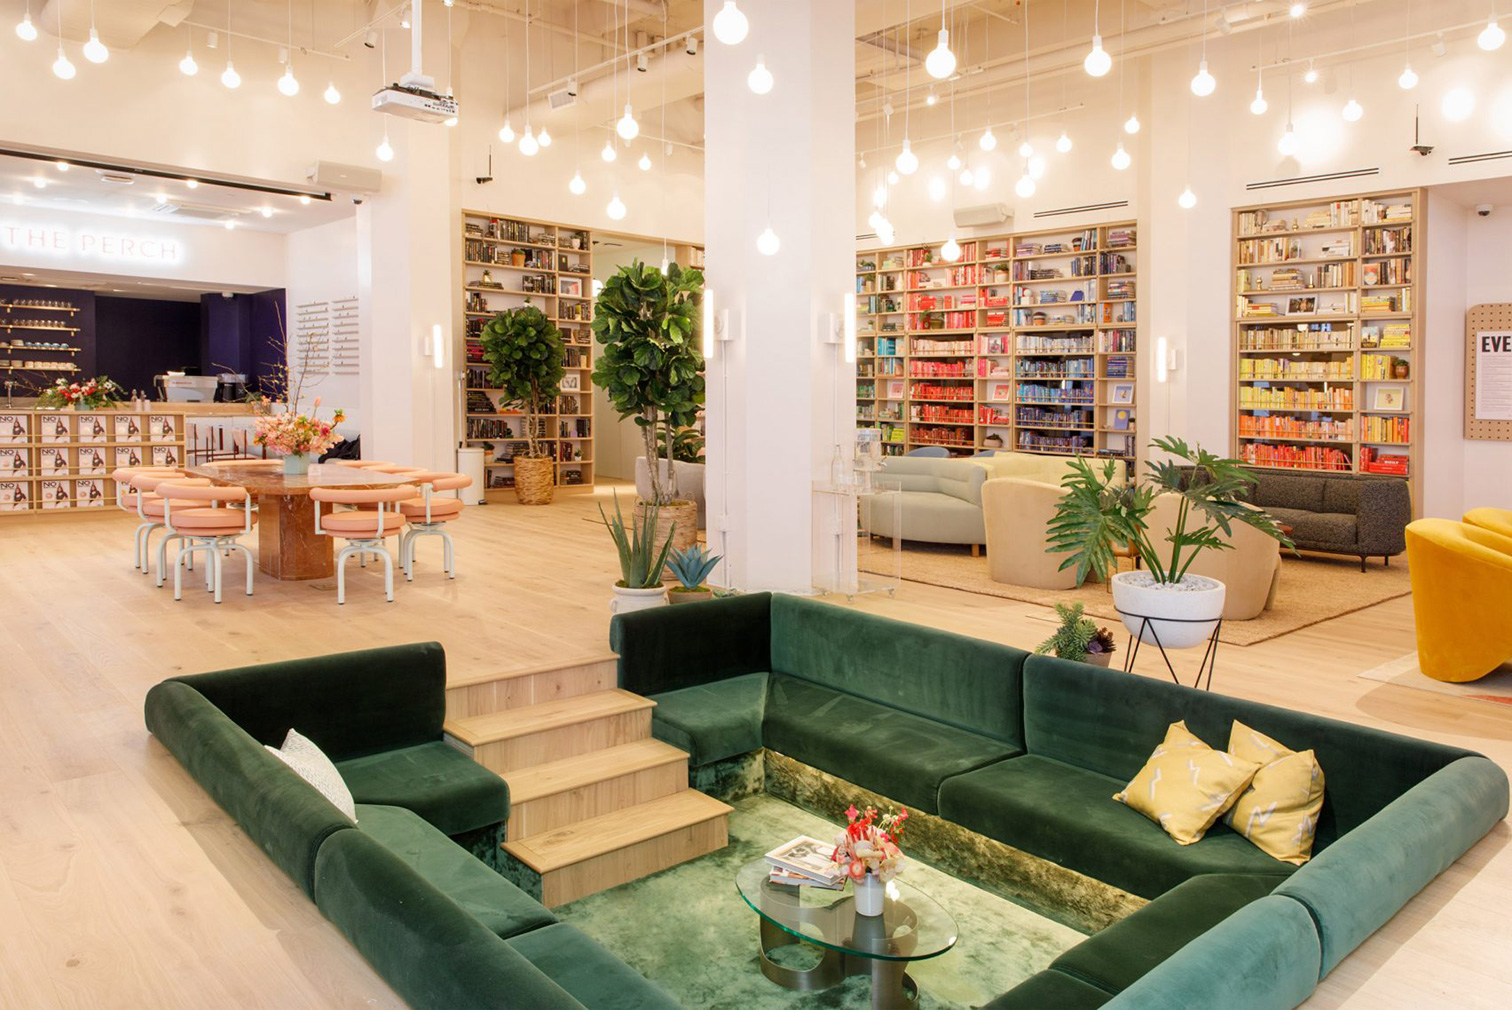 Coworking Spaces for Women Redefine the Workplace